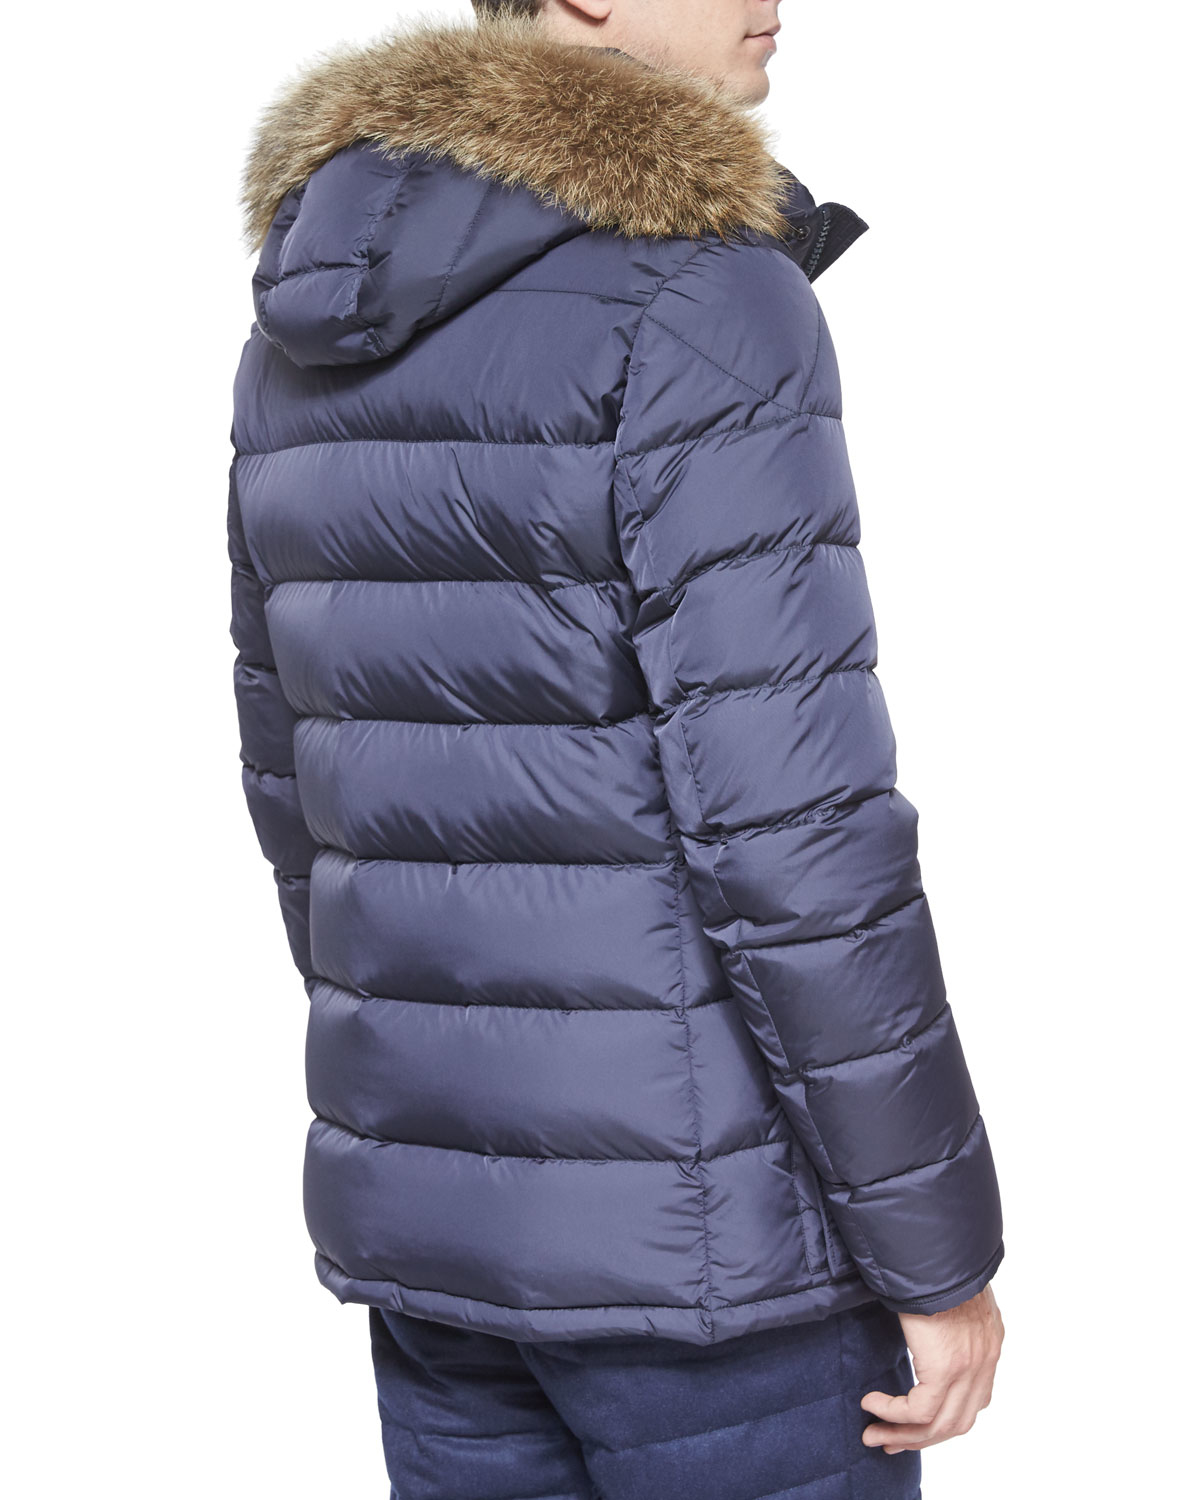 moncler cluny nylon puffer jacket with fur hood navy